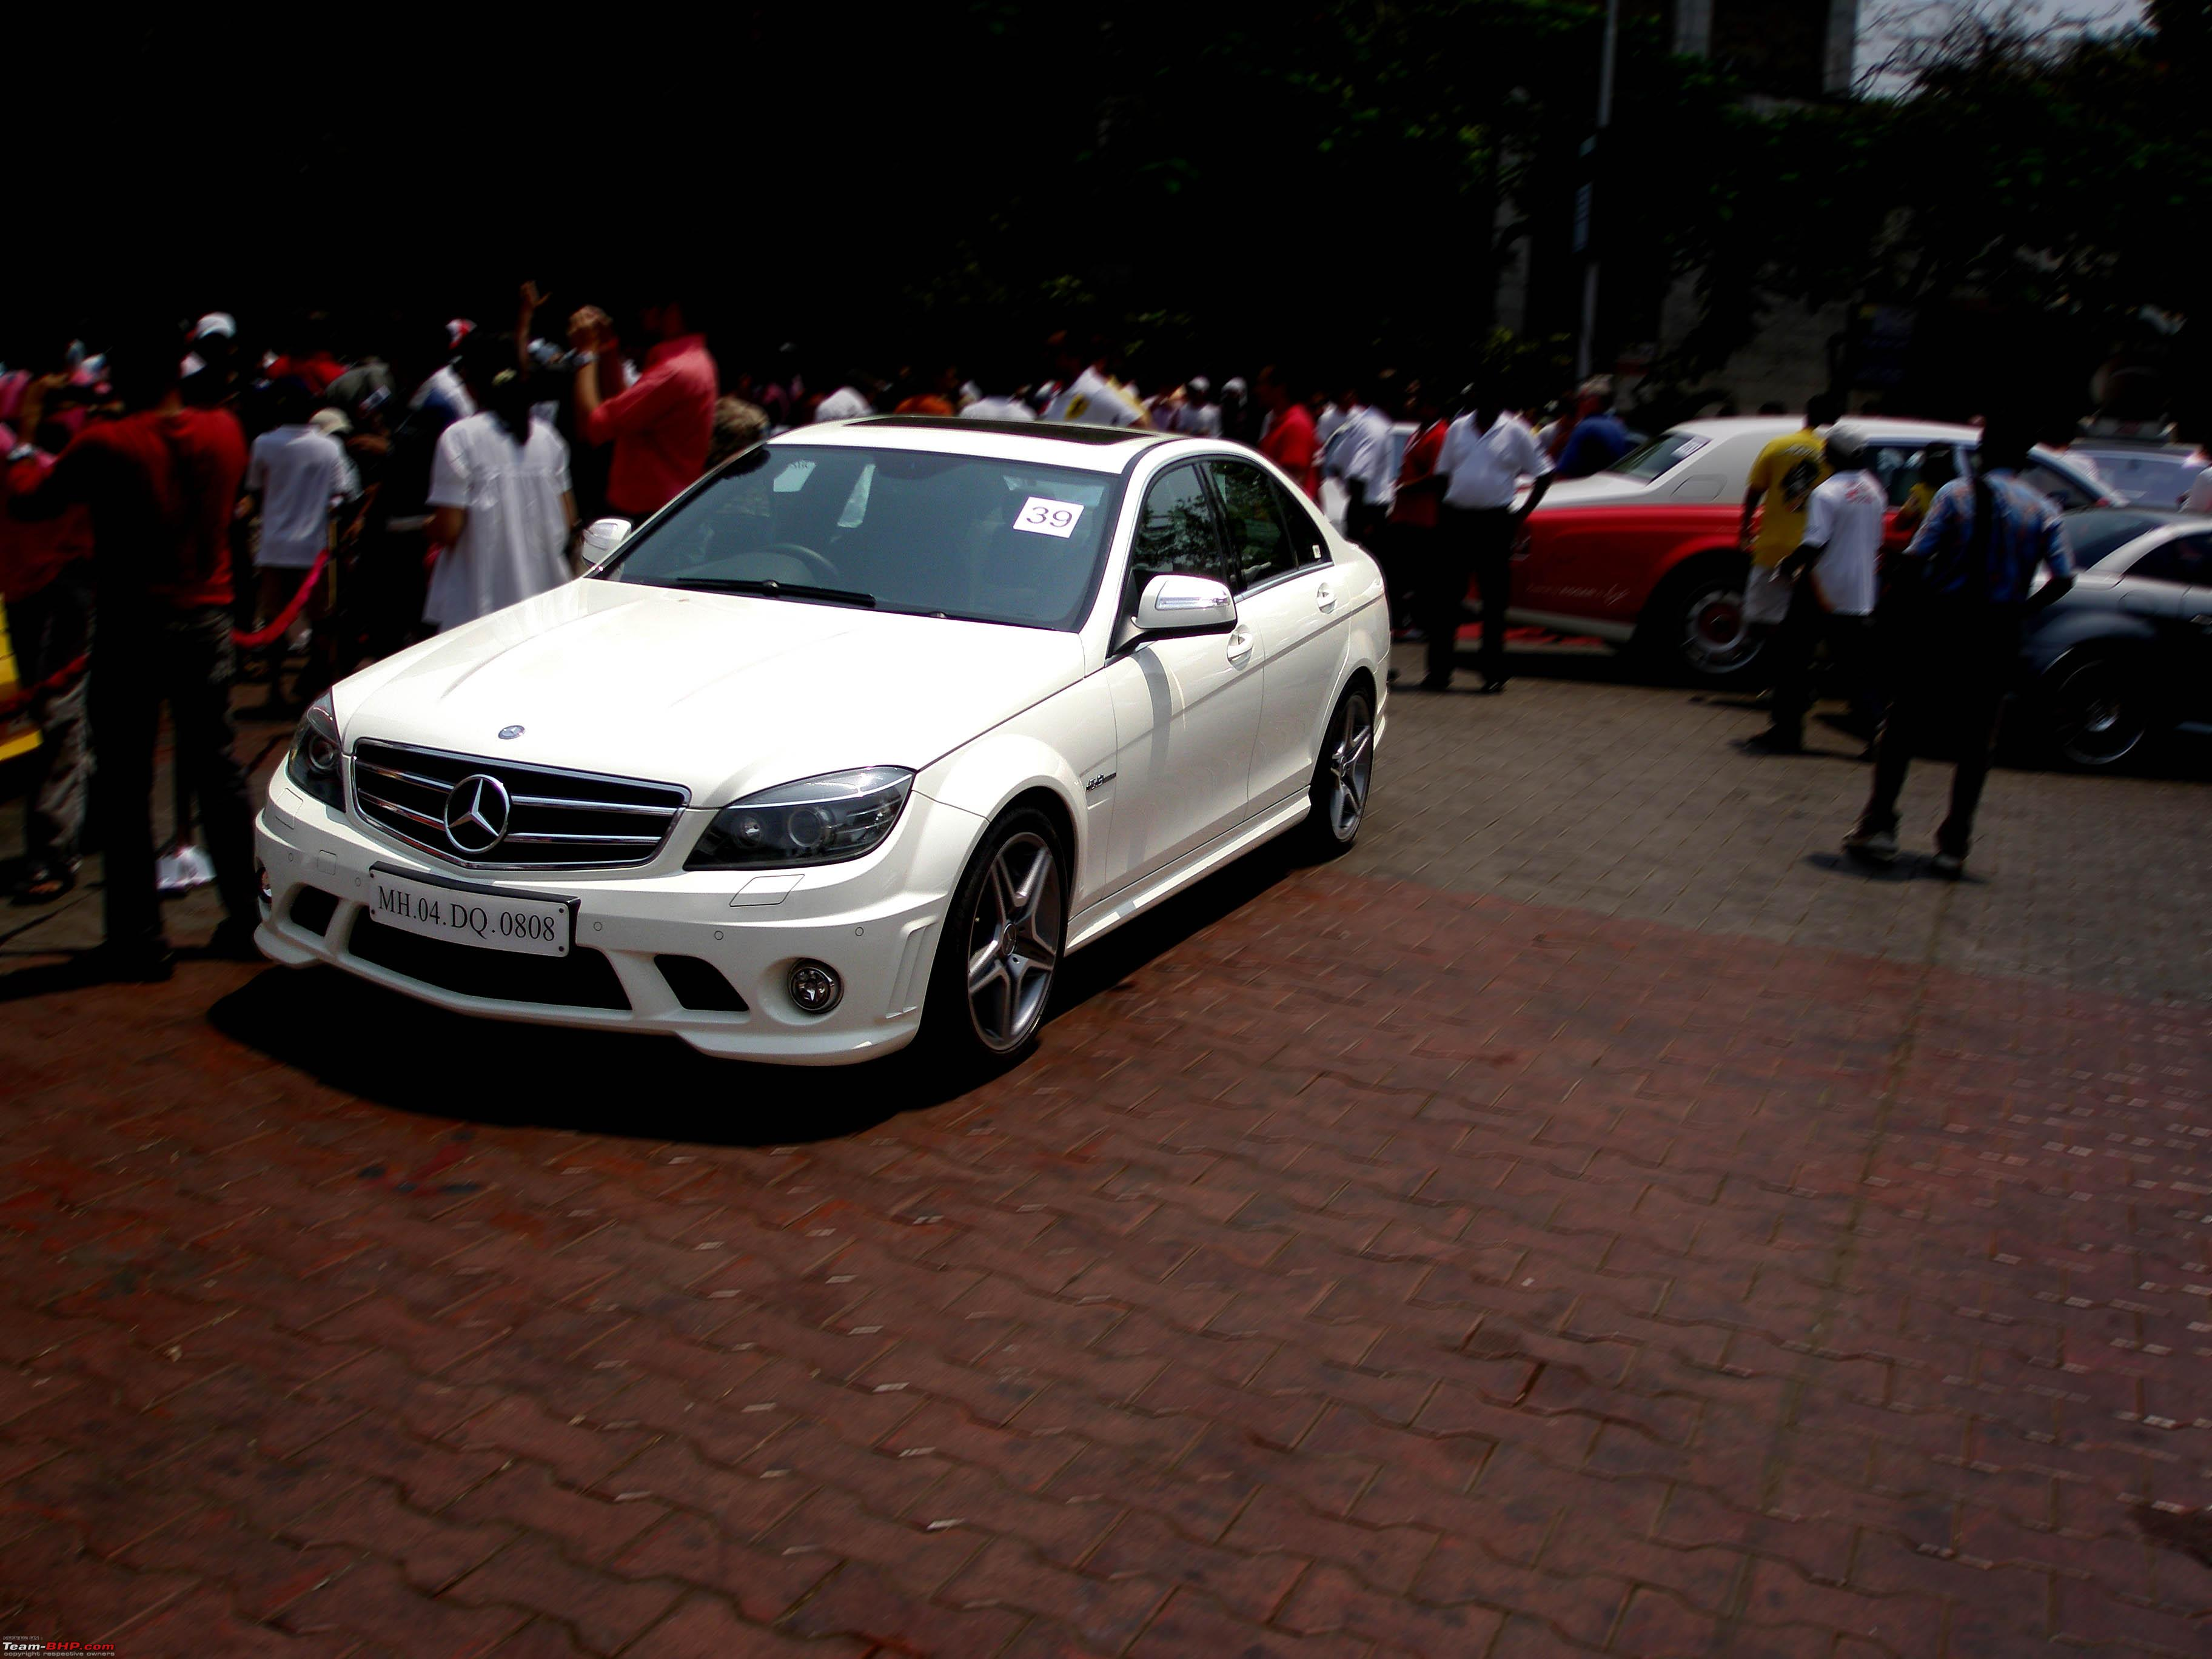 Event Mumbai Supercar Show April Pics From Page